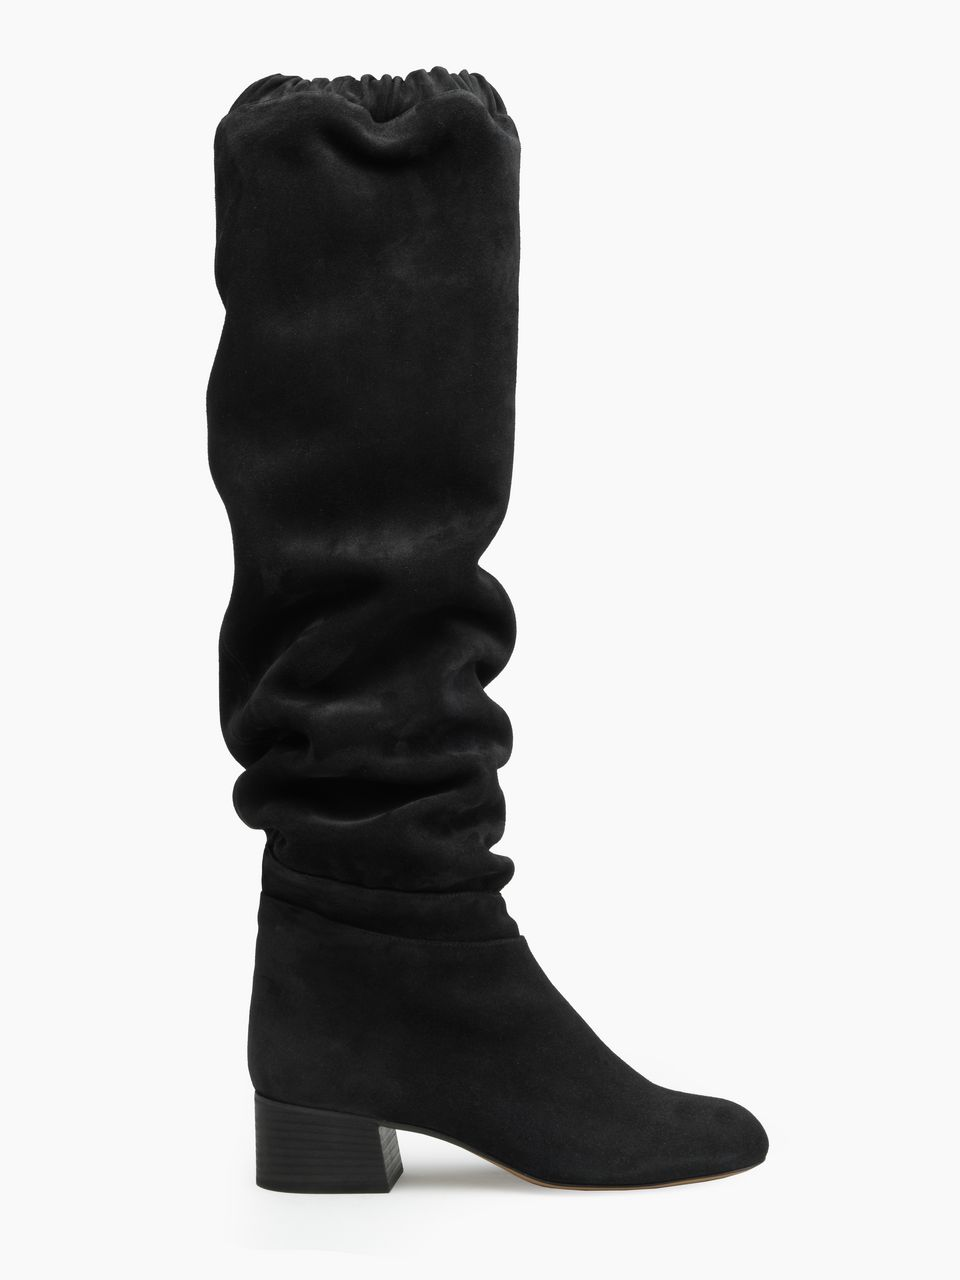 ad70306b Chloe Lena Over The Knee Boot, Women's Shoes | Chloé Official ...